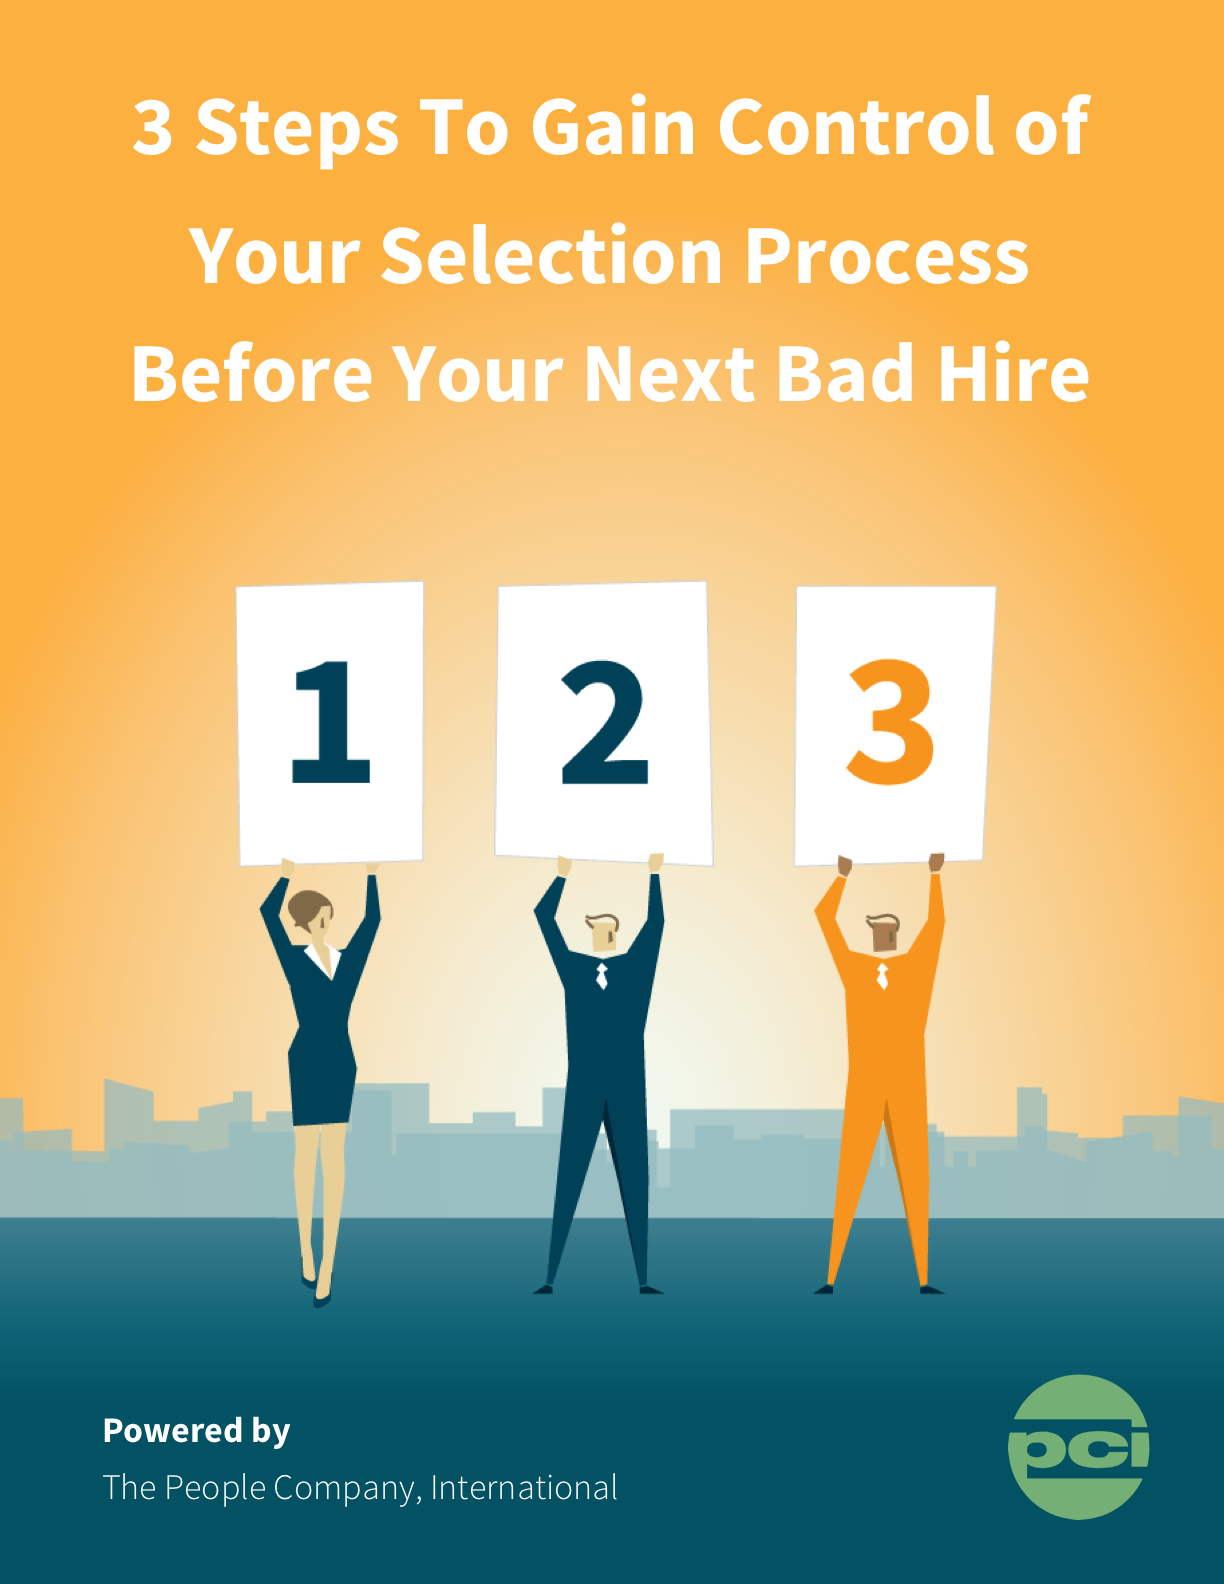 3 Steps To Gain Control of Your Selection Process Before Your Next Bad Hire